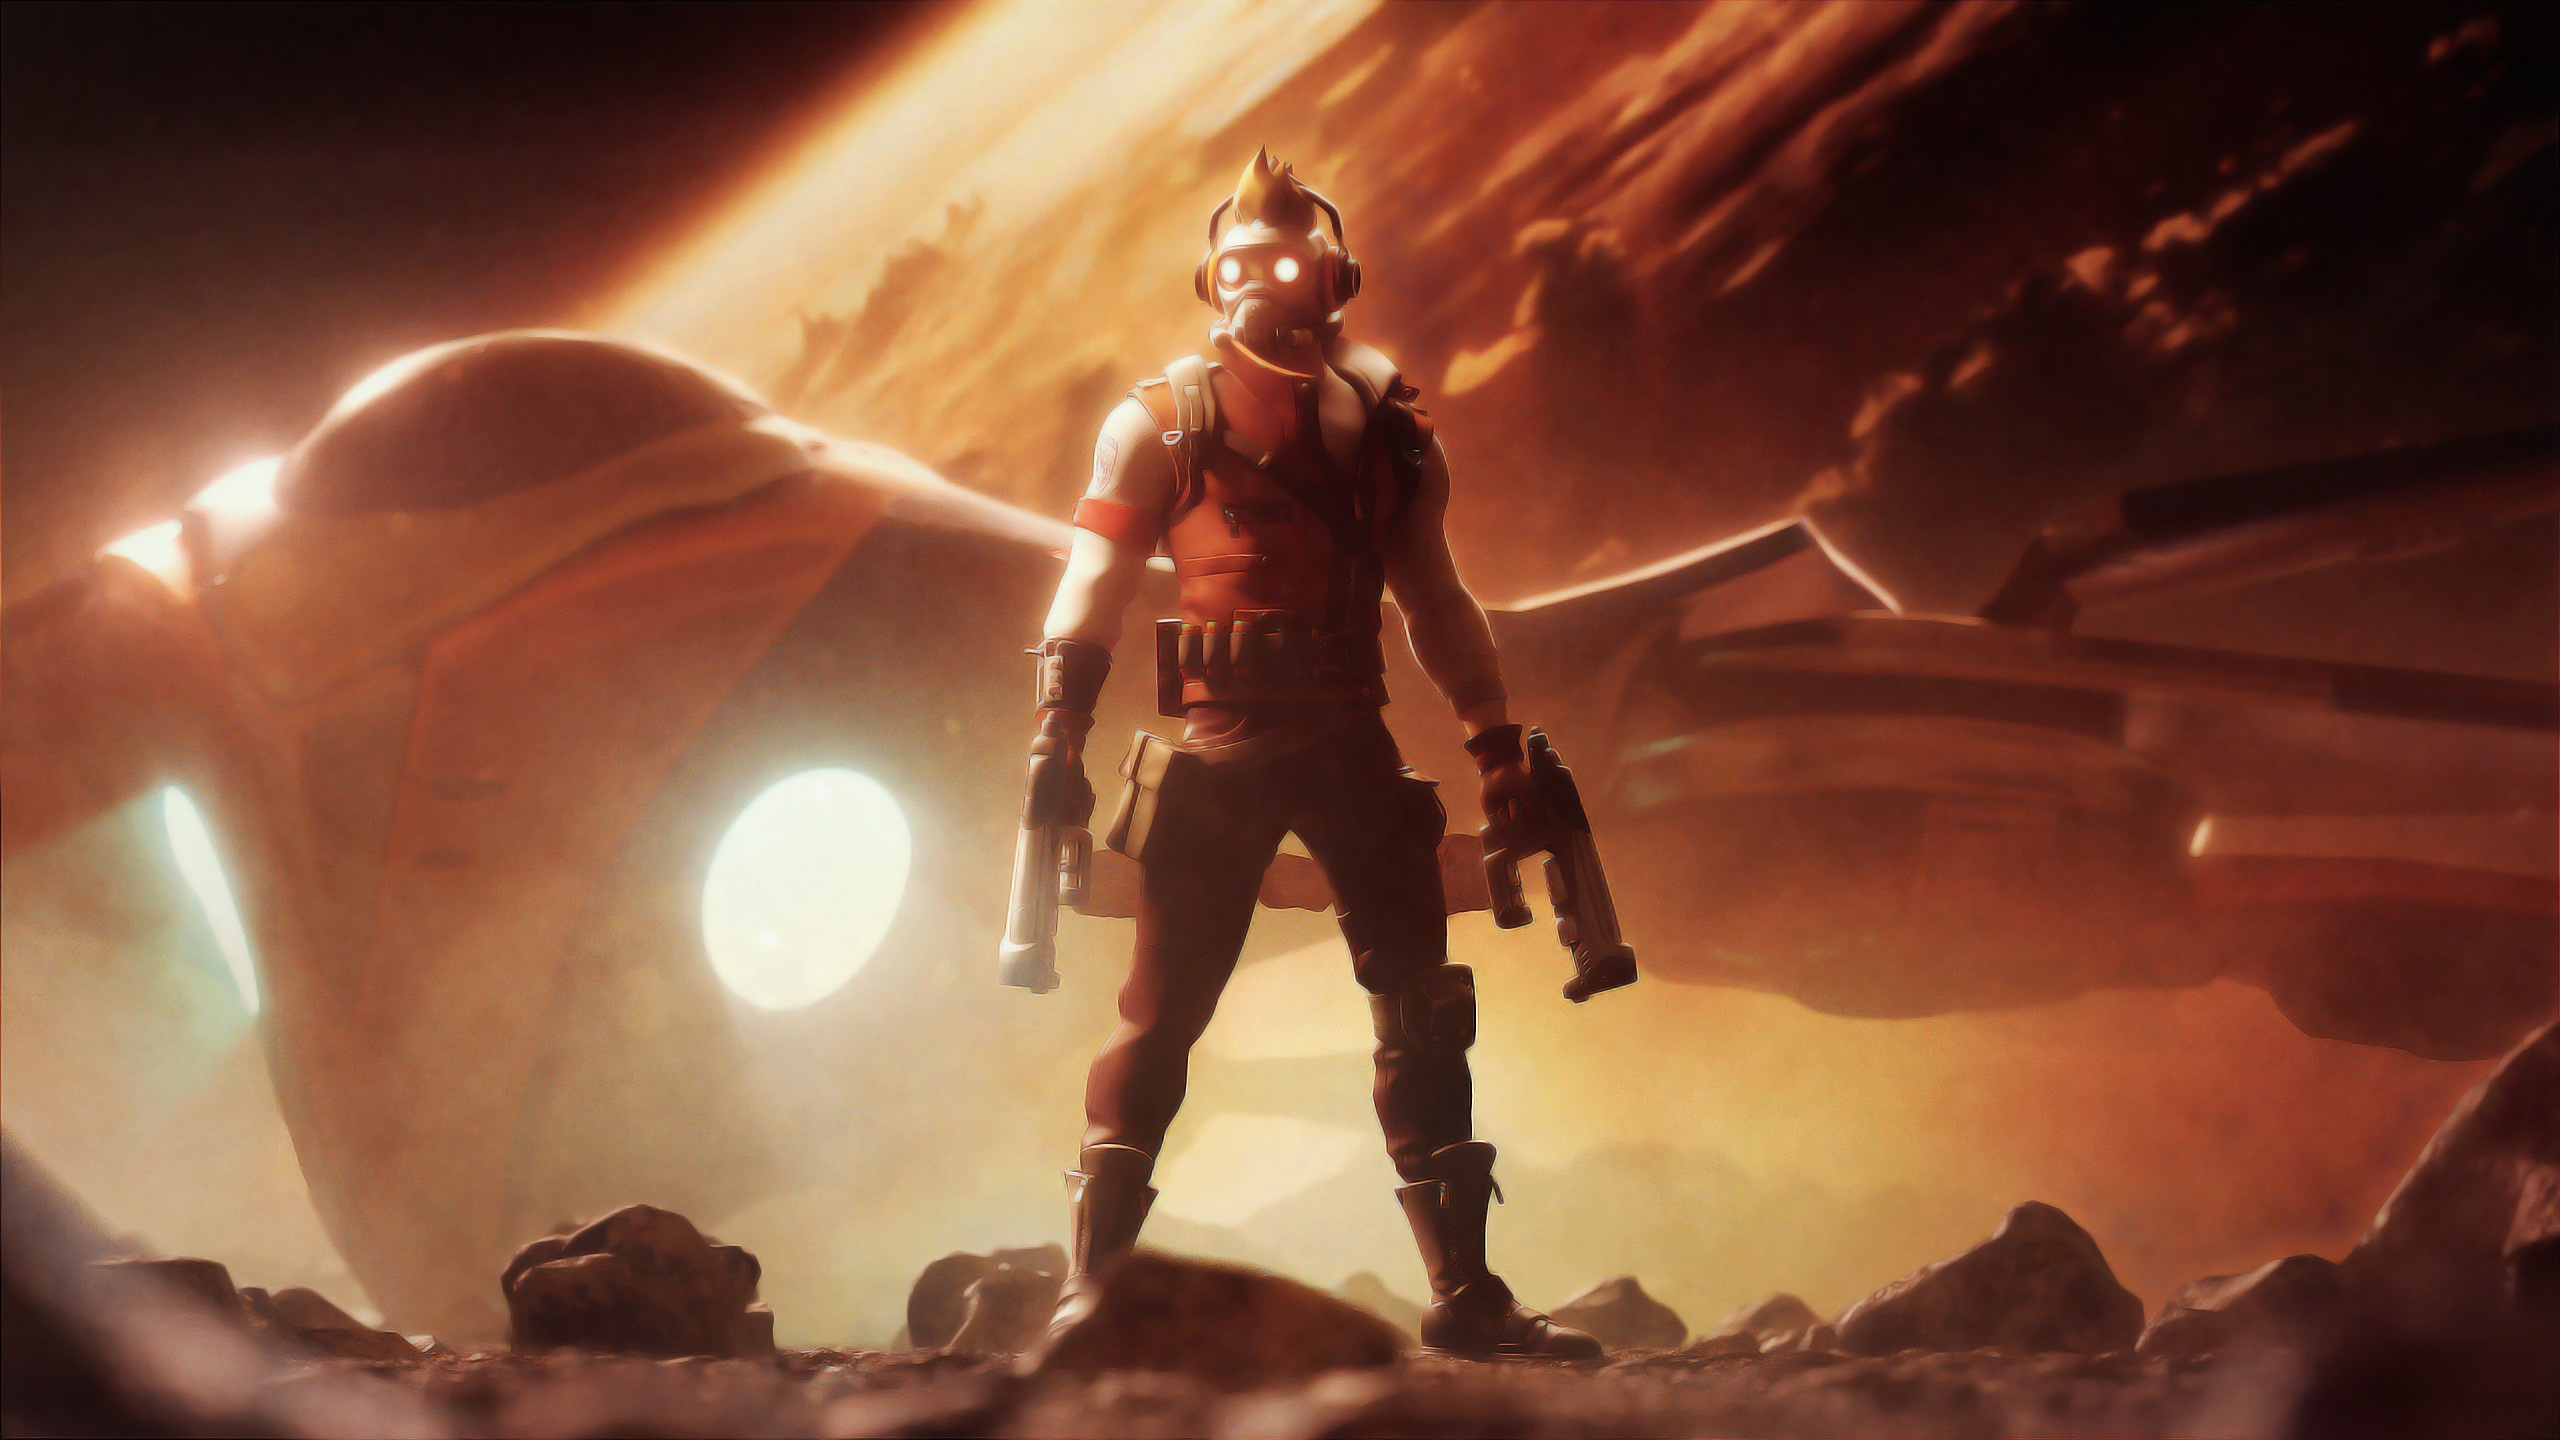 2560x1440 Star Lord Fortnite 4k 1440p Resolution Wallpaper